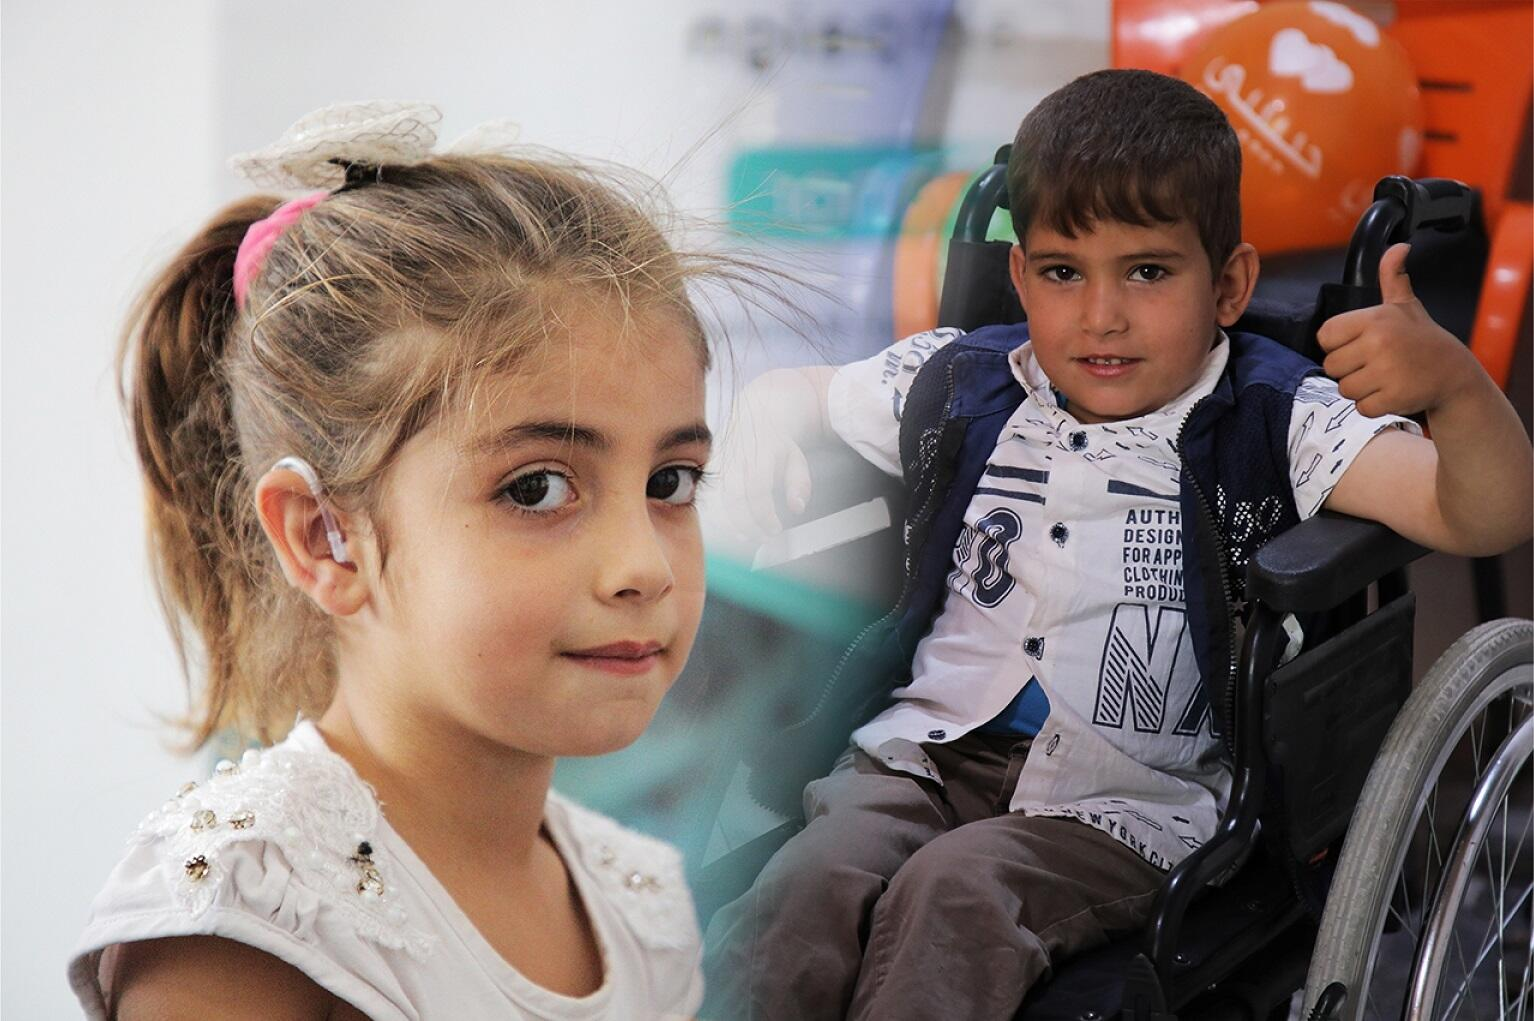 Support for the Most Vulnerable Syrian Children